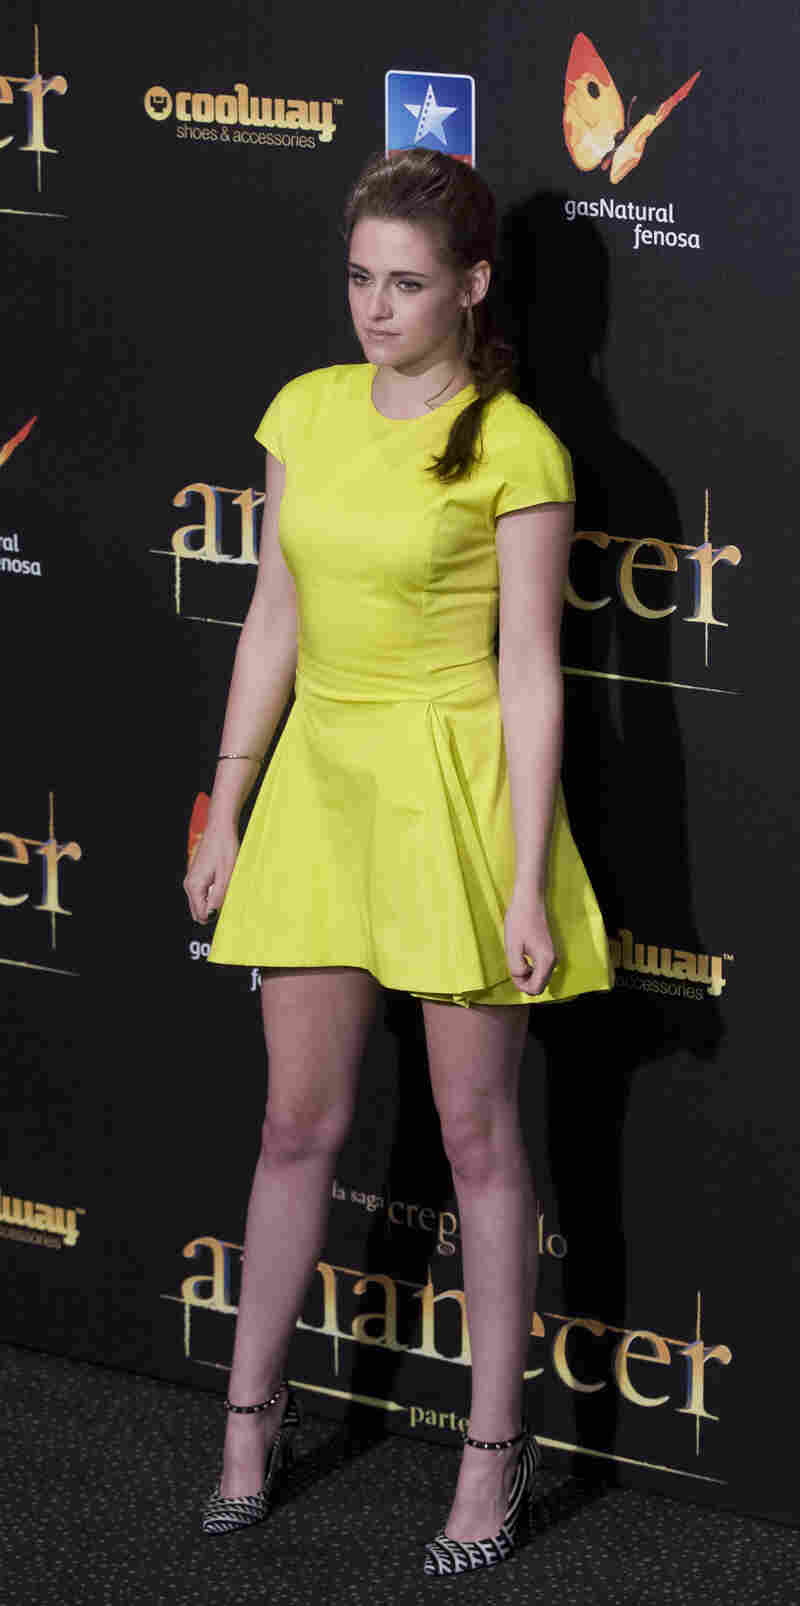 Kristen Stewart poses during a photo call at the Spanish premiere of The Twilight Saga: Breaking Dawn Part 2.